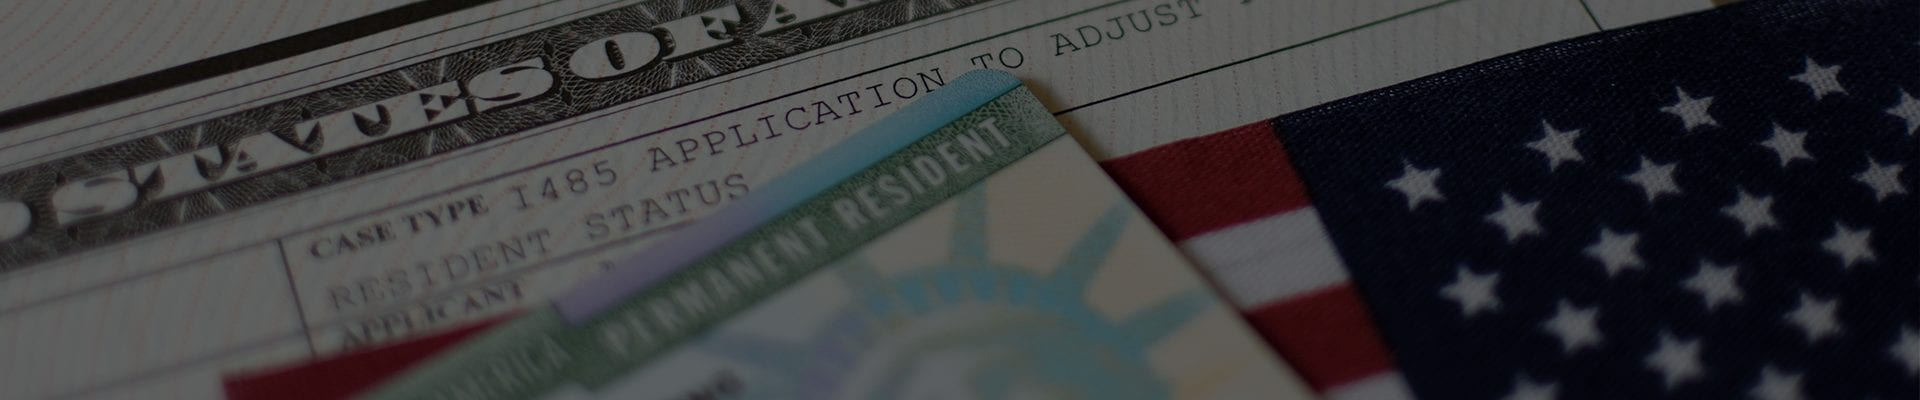 Application to Register Permanent Residence or Adjust Status with USCIS